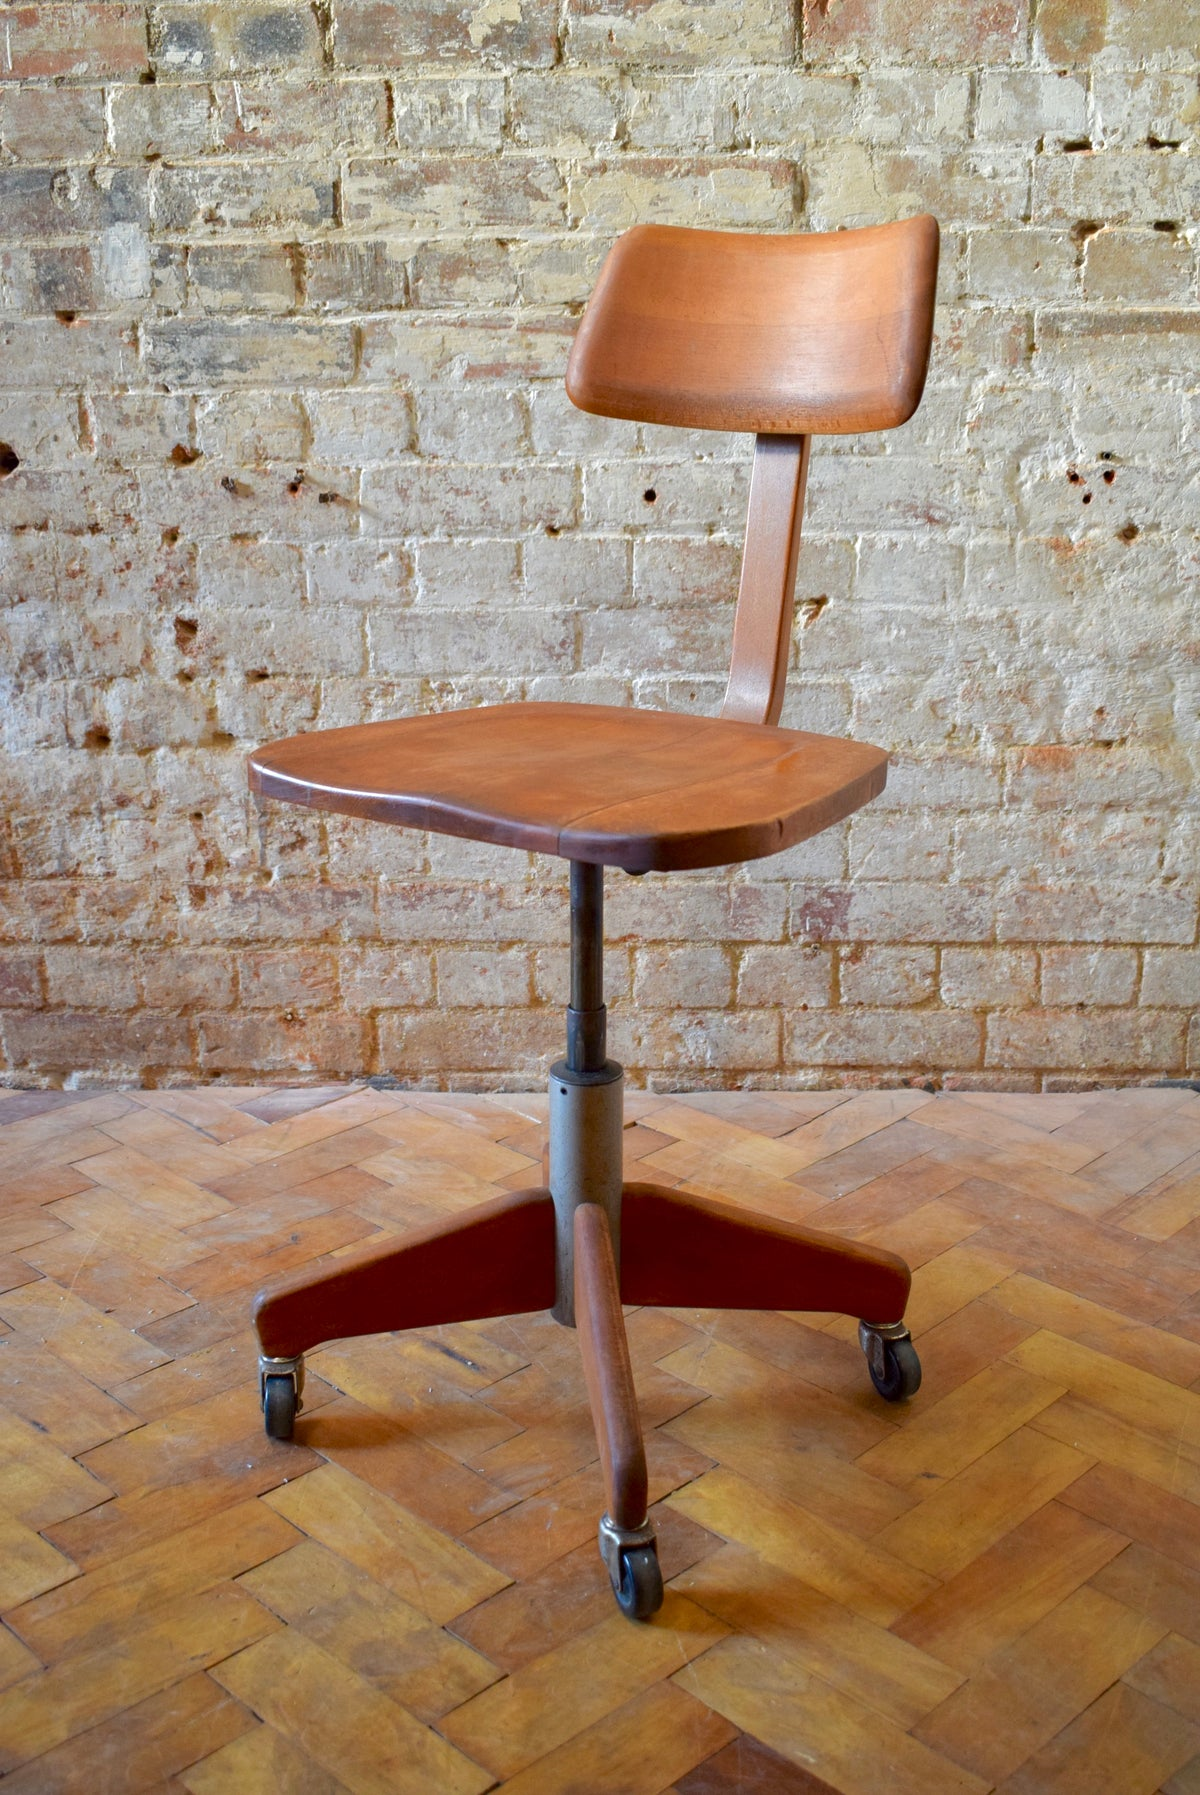 Swiss 1950s Vintage Industrial Office Chair By Stoll Giroflex